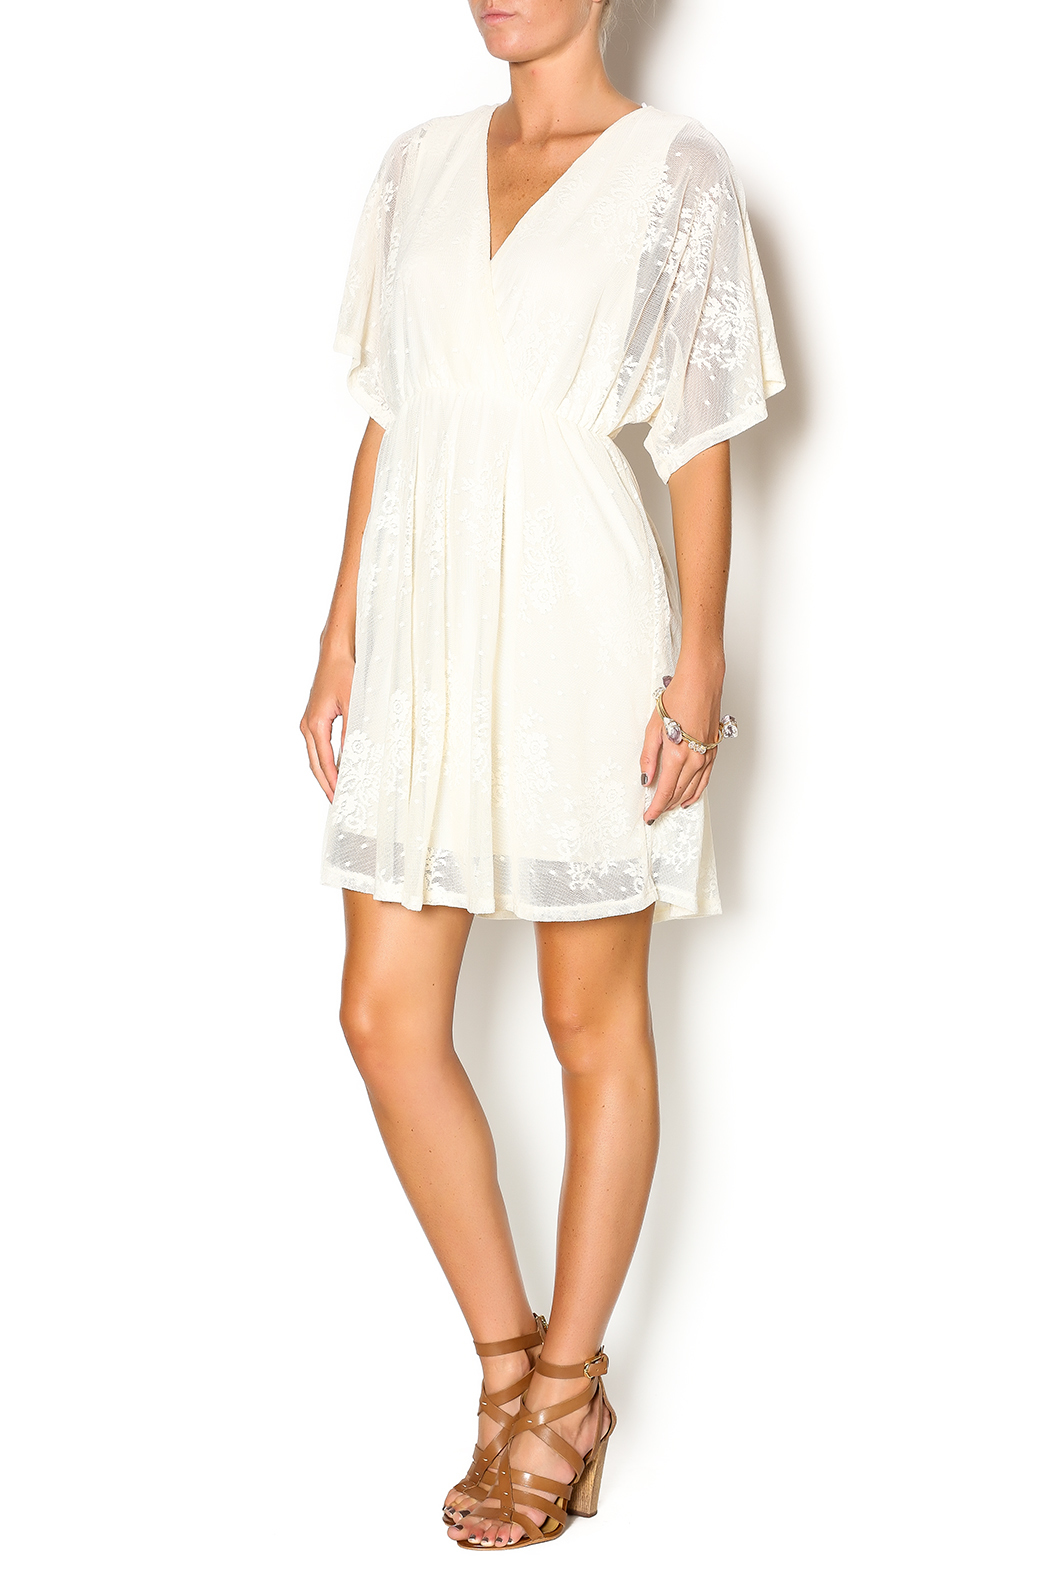 Wish Collection Cross-Front Lace Dress - Front Full Image